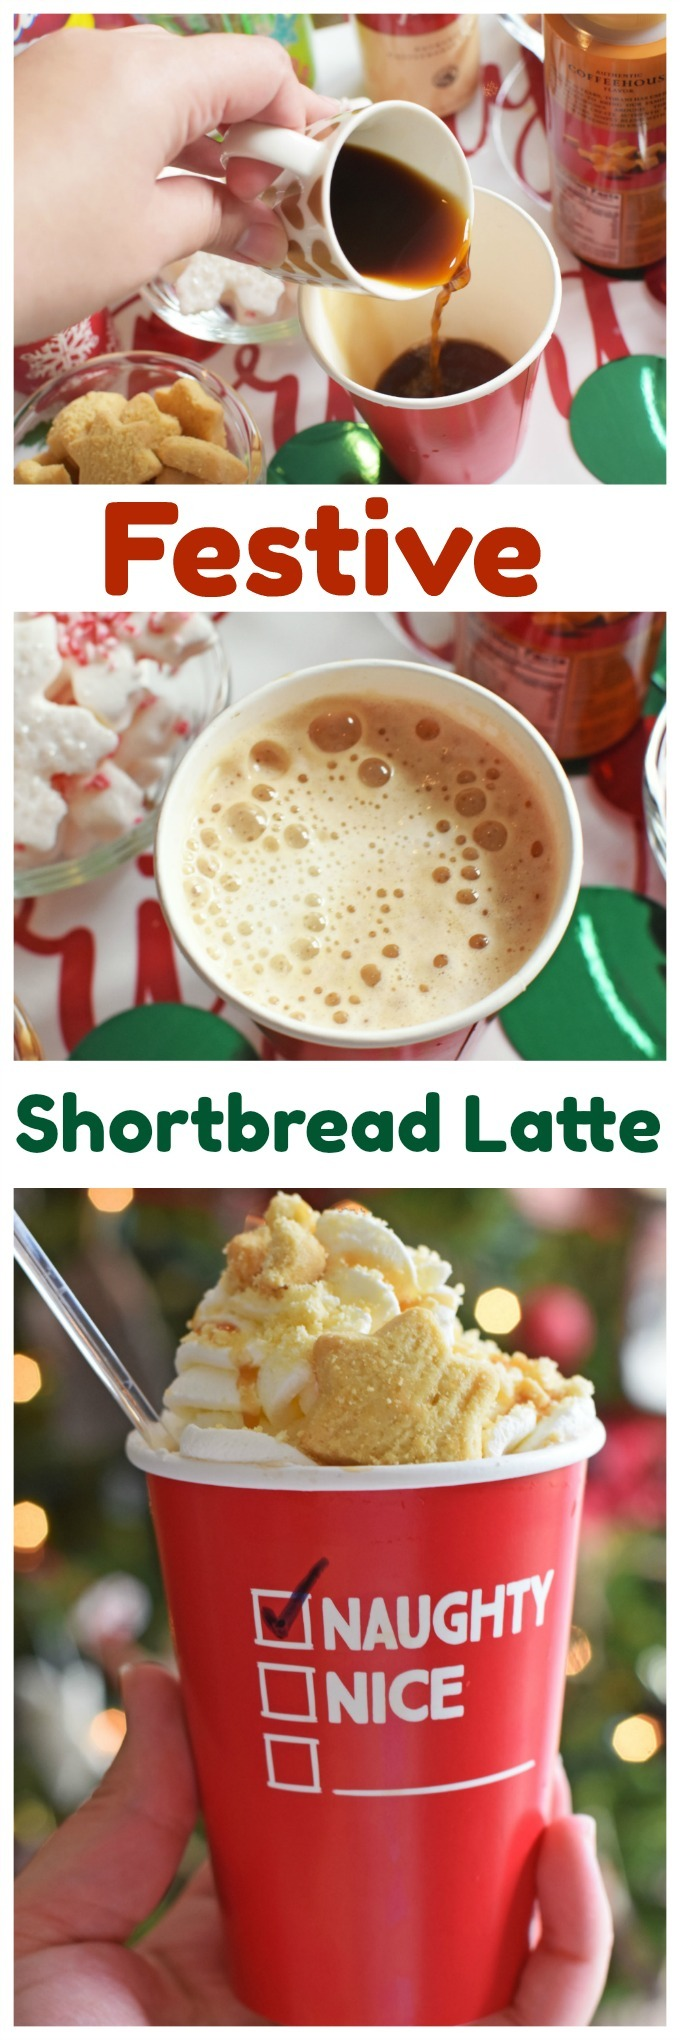 Festive Shortbread Latte that you can make at home